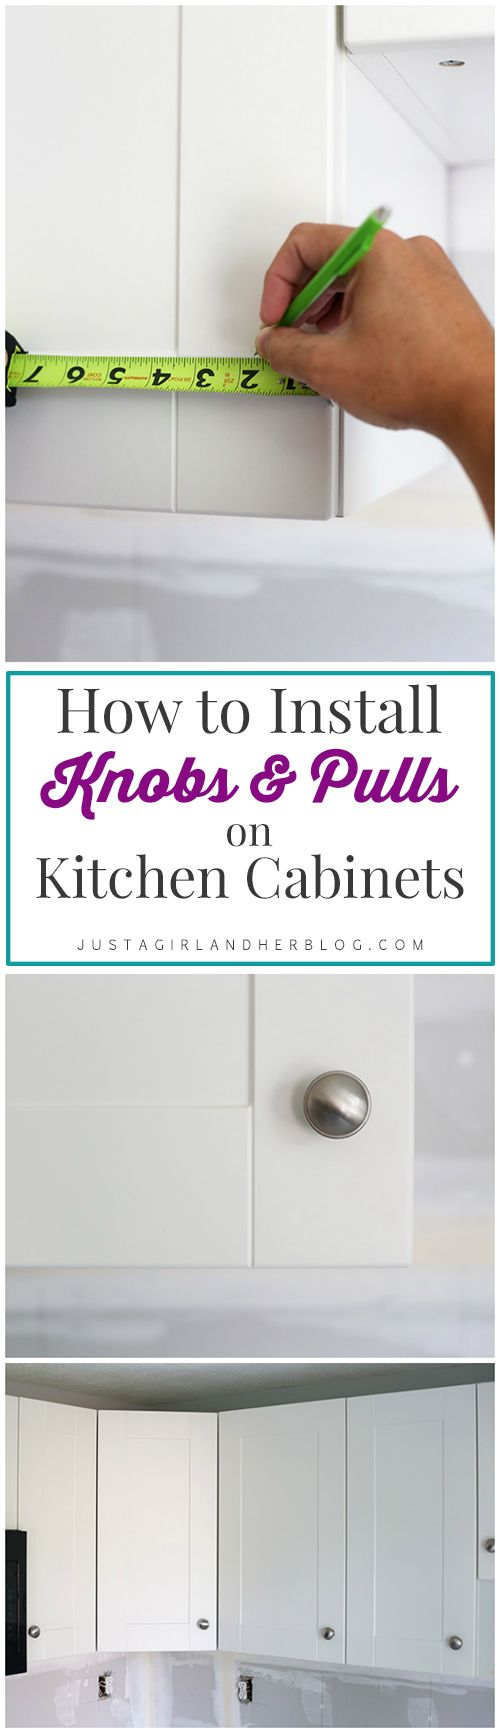 Best 25+ Kitchen knobs ideas on Pinterest | Kitchen cabinet knobs ...